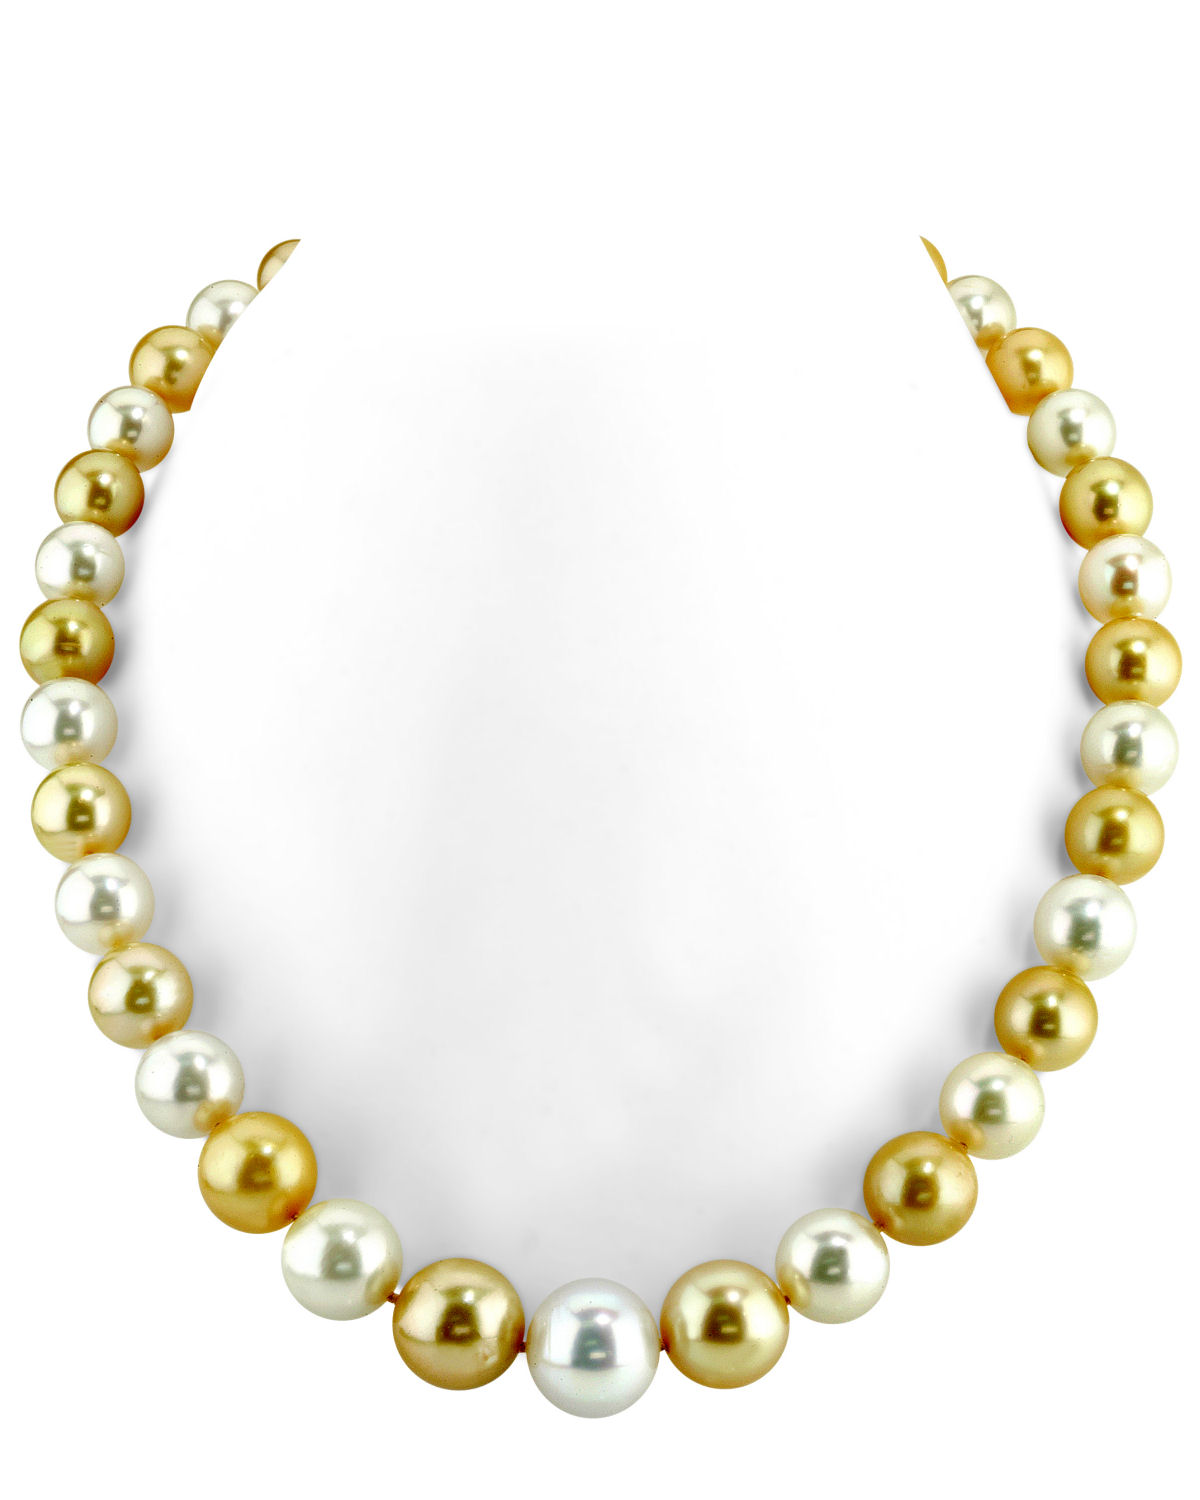 10-13mm South Sea Multicolor Pearl Necklace